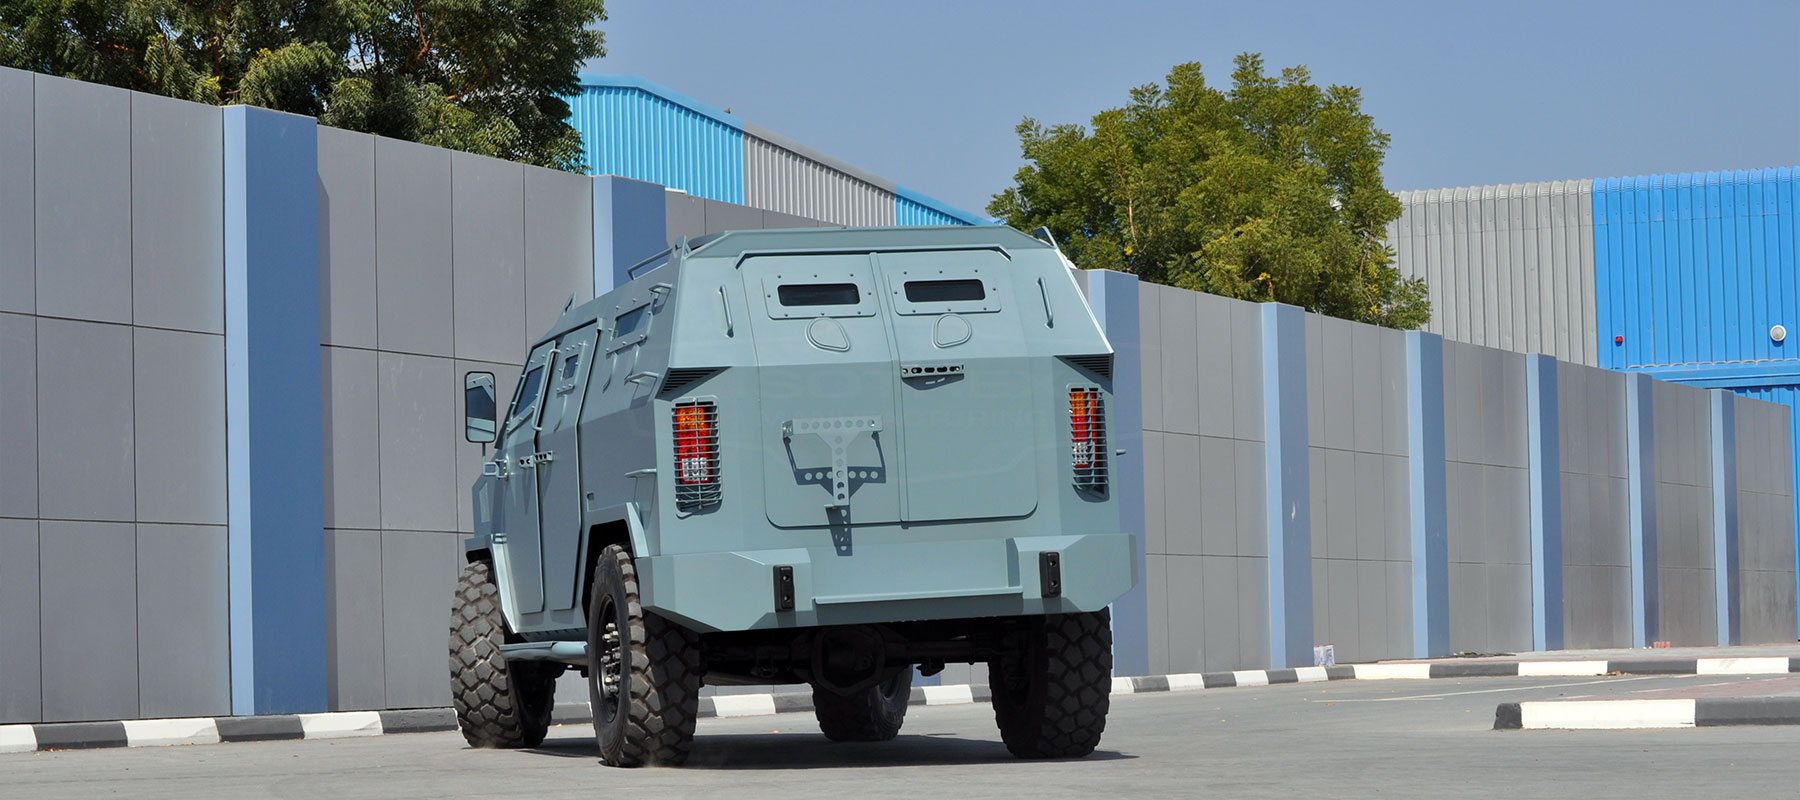 Isotrex Phantom - Armored Personnel Carriers